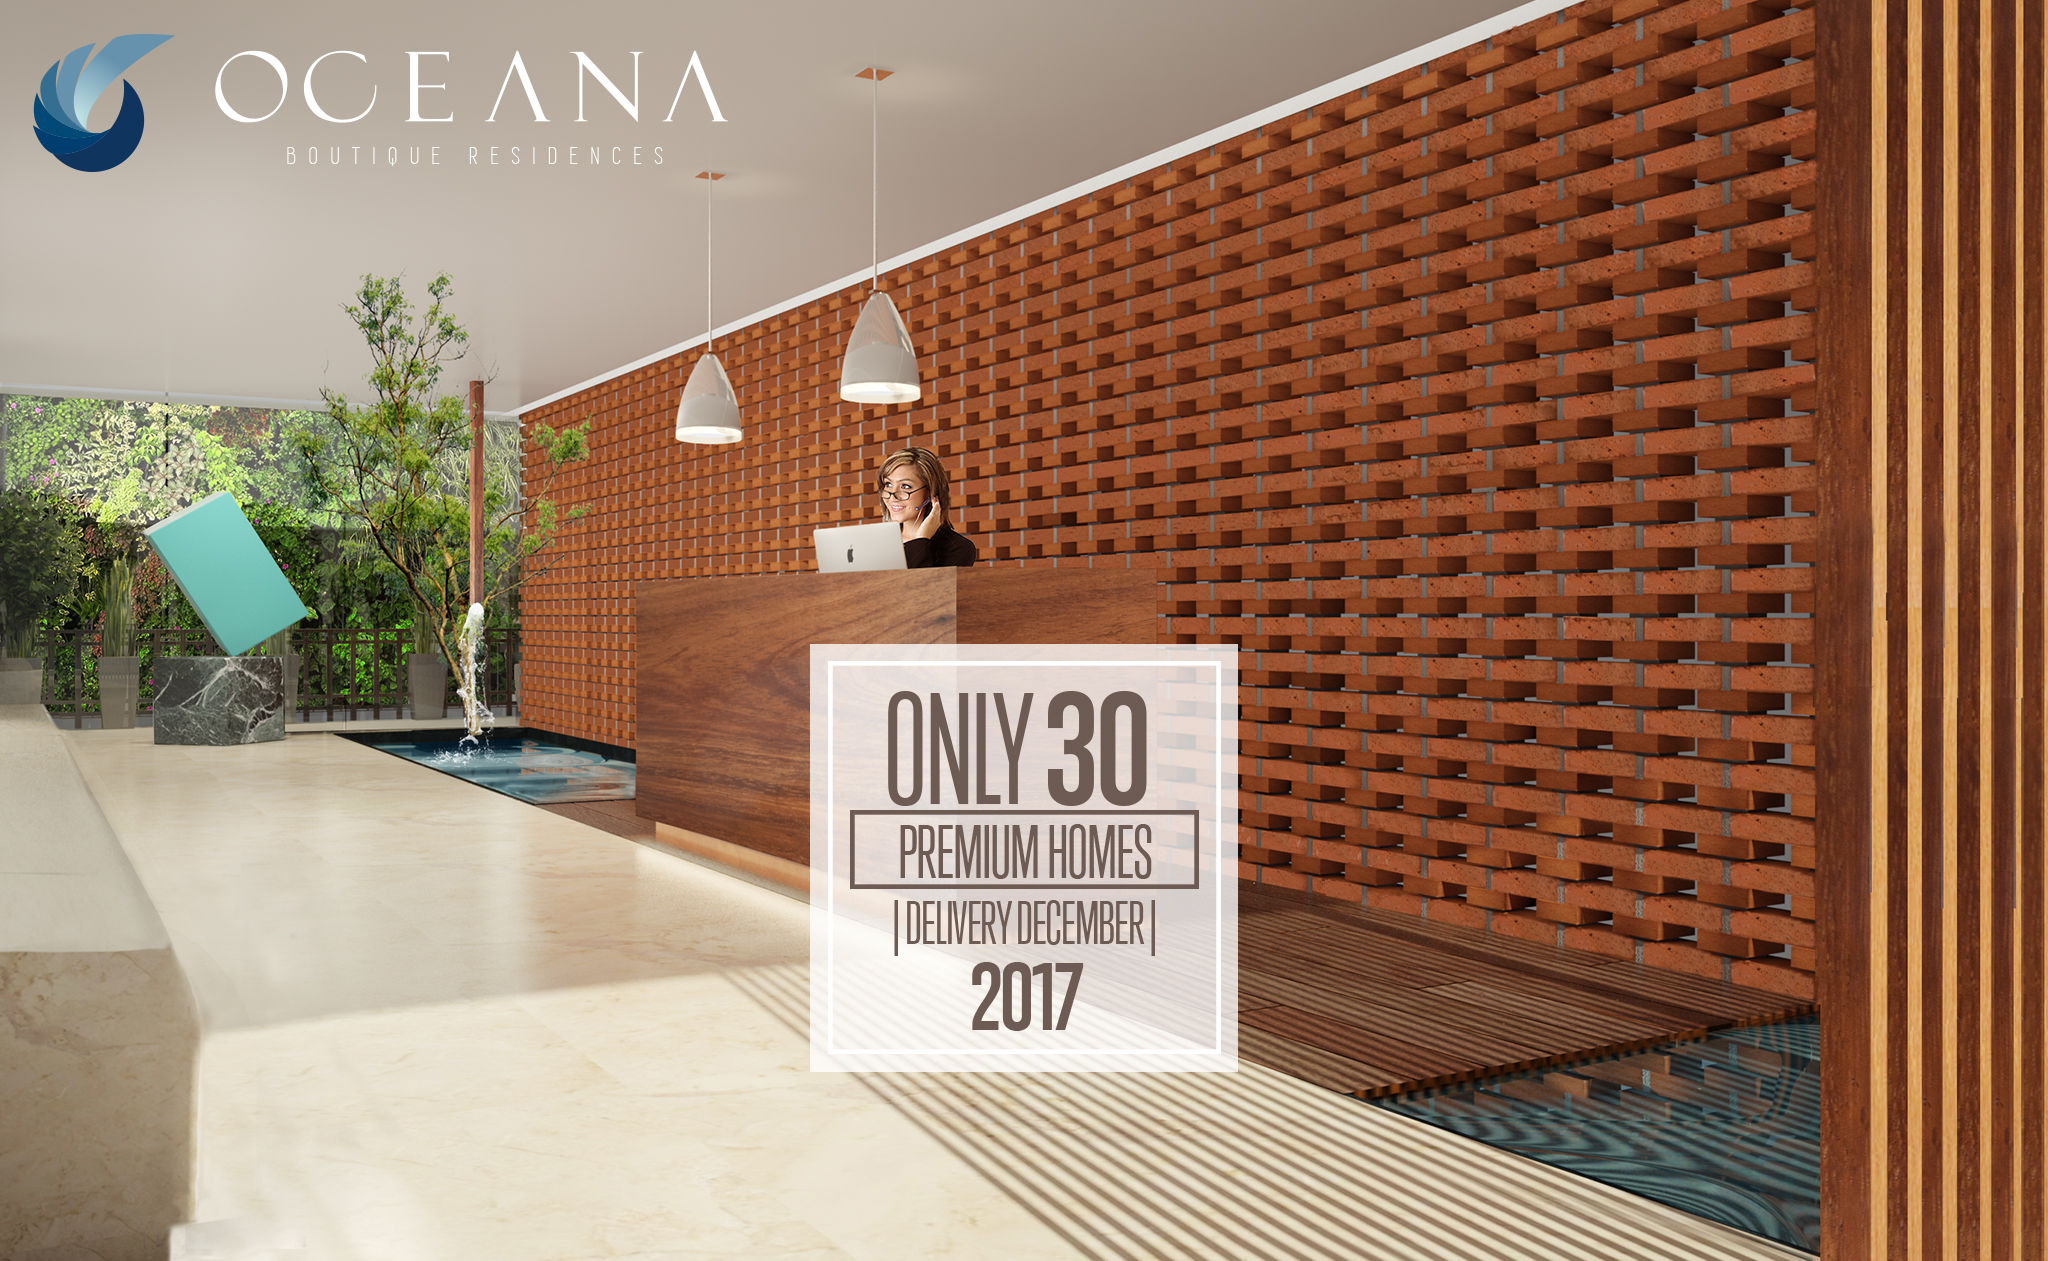 oceana_boutique_residences_lobby